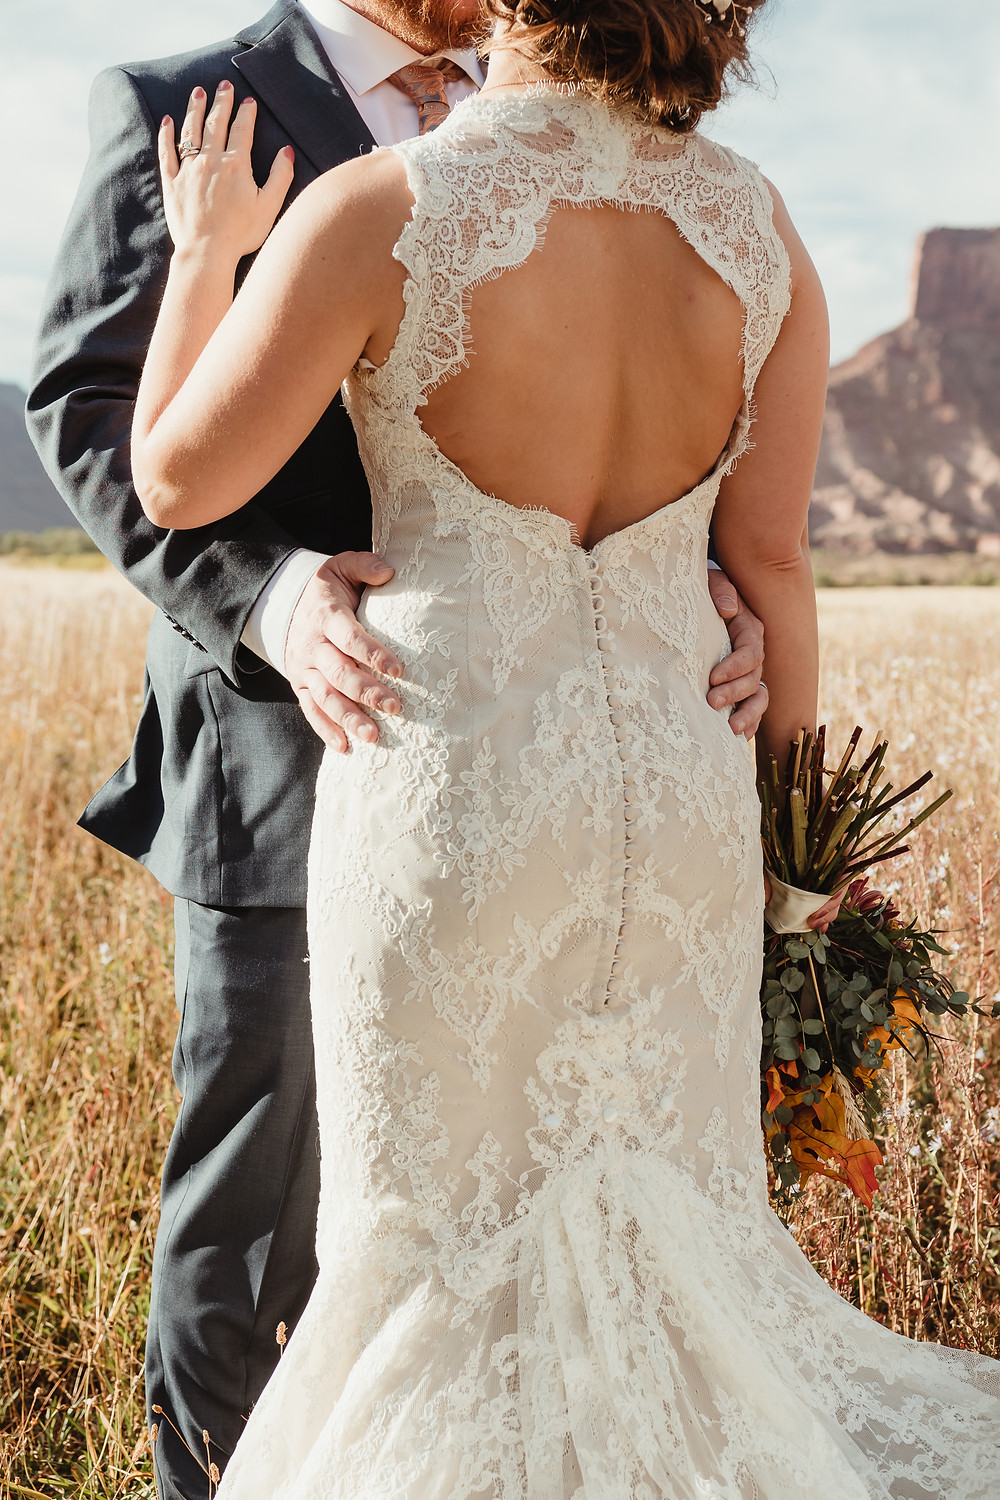 Gateway Canyons Resort Colorado elopement ceremony intimate bride and groom kiss red rock canyon